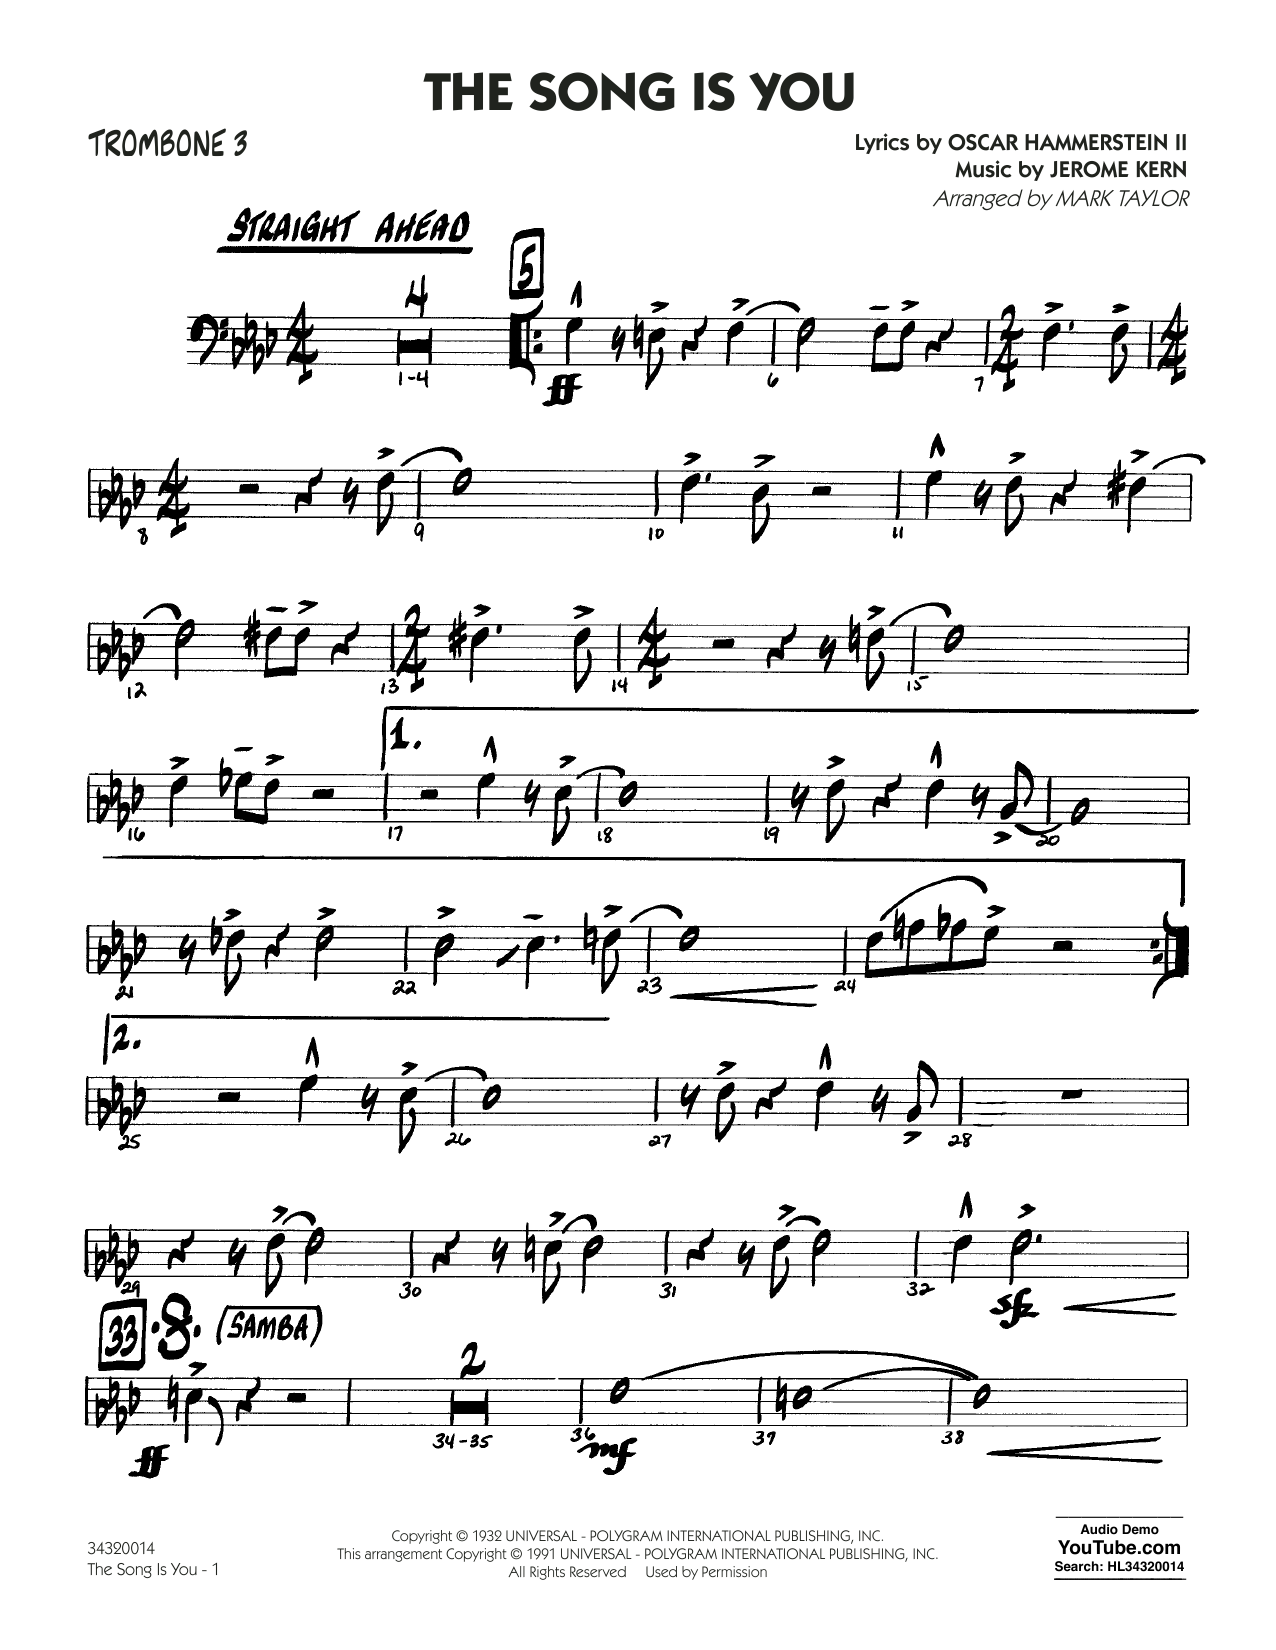 Mark Taylor The Song Is You - Trombone 3 sheet music notes and chords. Download Printable PDF.